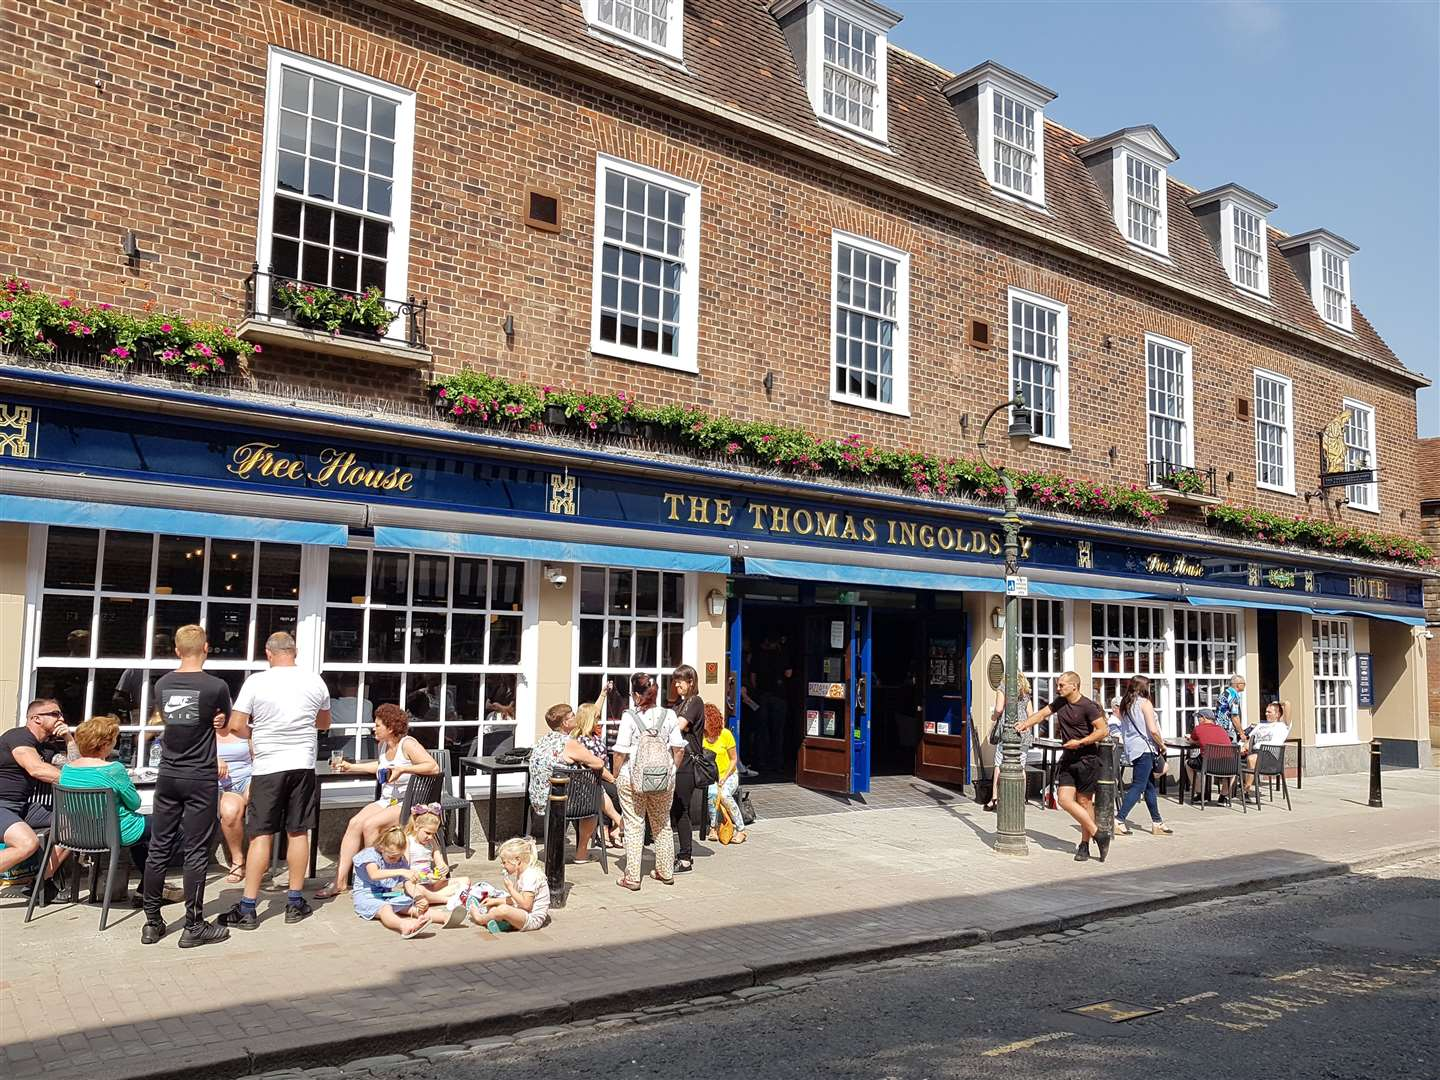 The Thomas Ingoldsby Wetherspoon pub in Canterbury recently saw a major revamp to boost its hotel offering